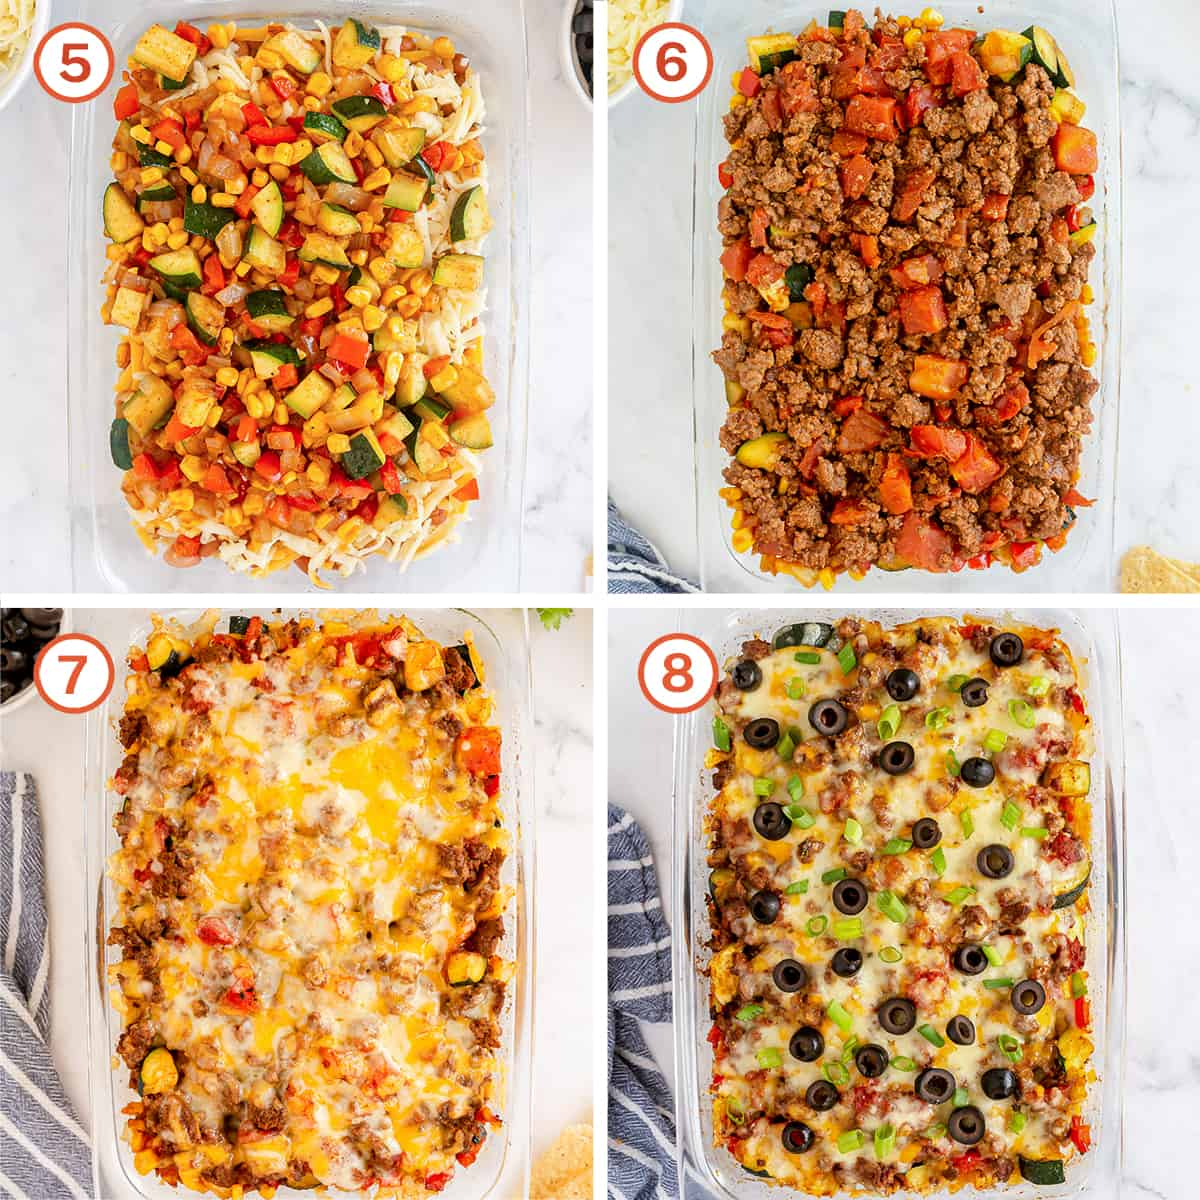 Vegetables and beef are topped with cheese and olives in a casserole dish.